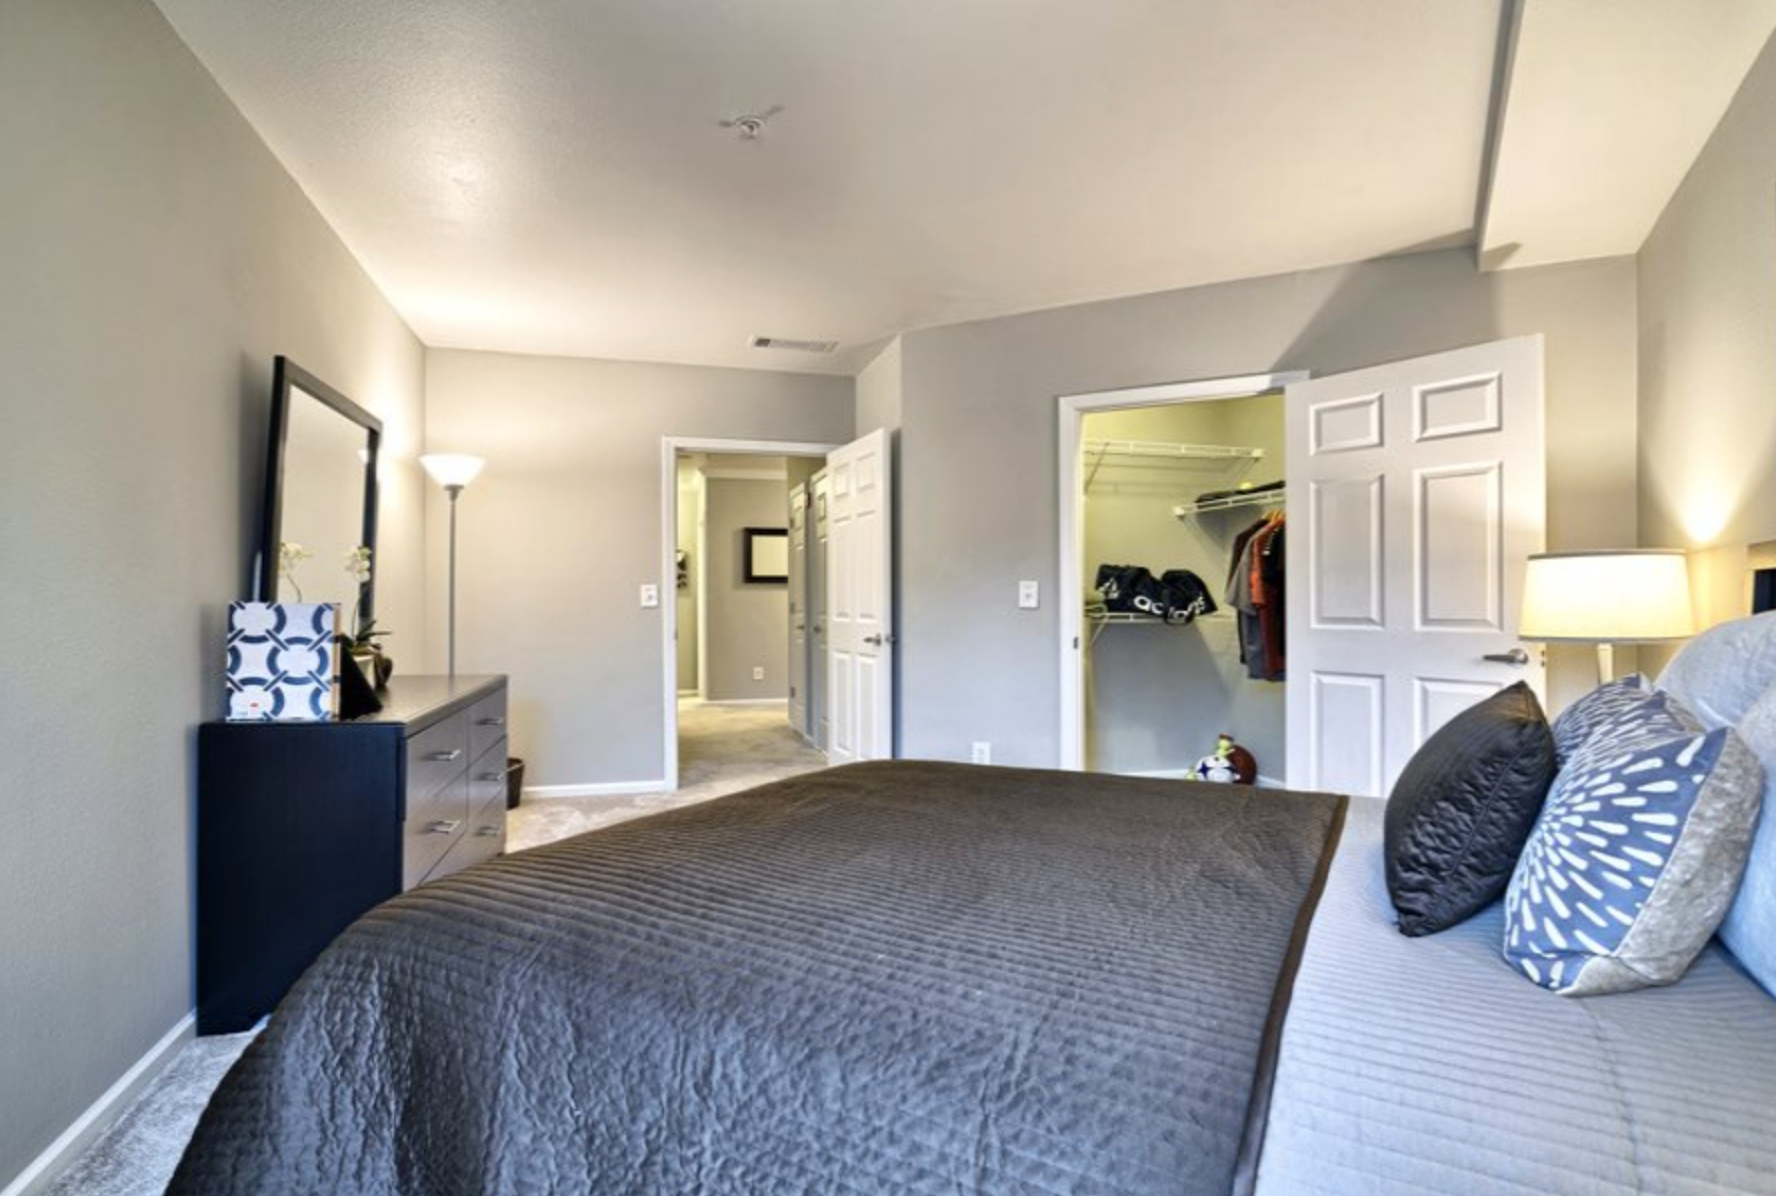 20 - Typical Bedroom